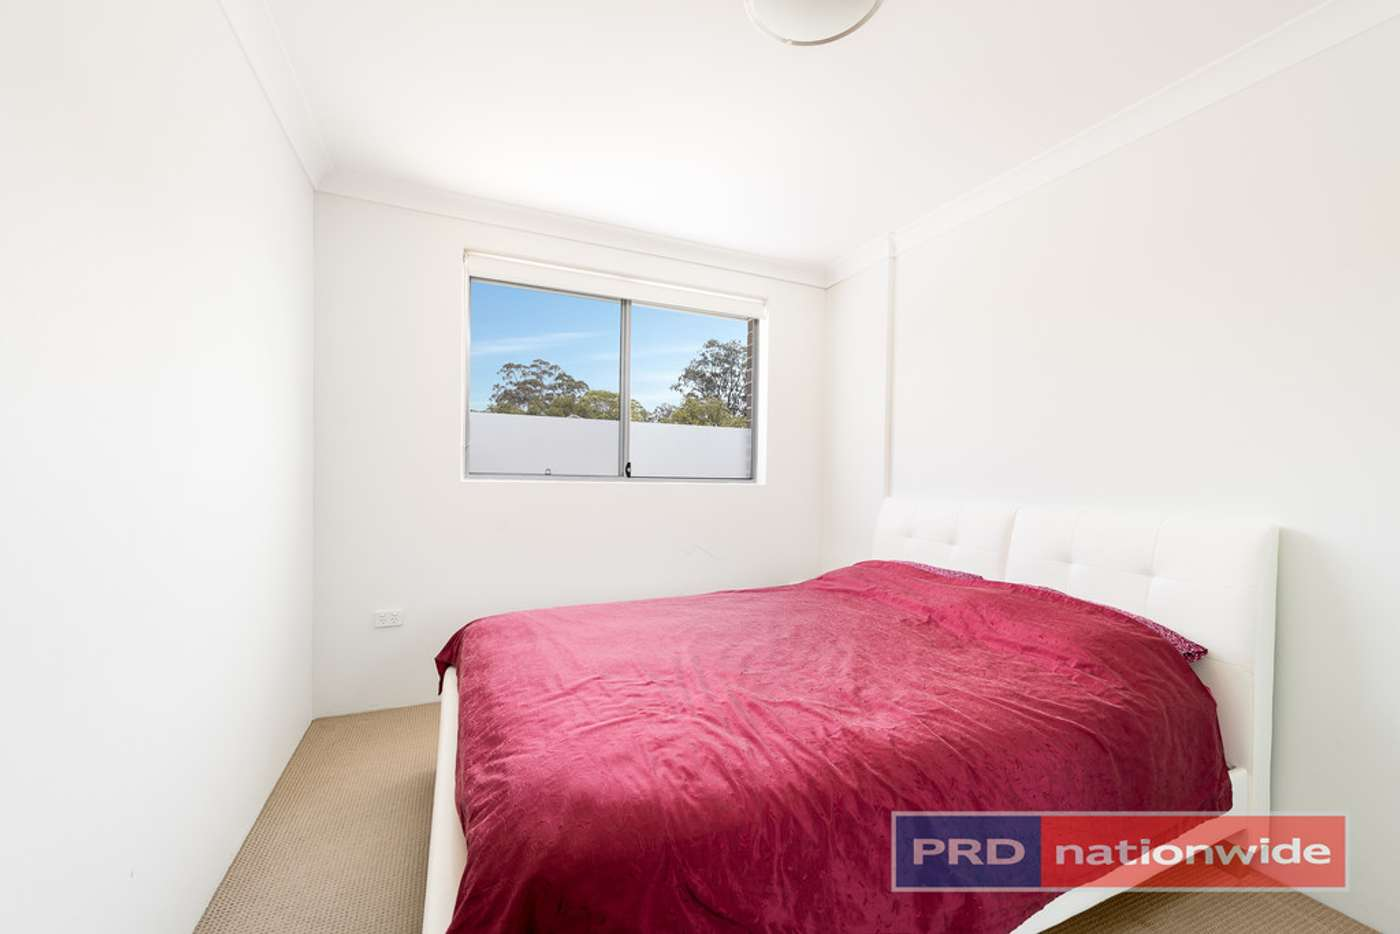 Sixth view of Homely house listing, 45 Hodgkinson Crescent, Panania NSW 2213